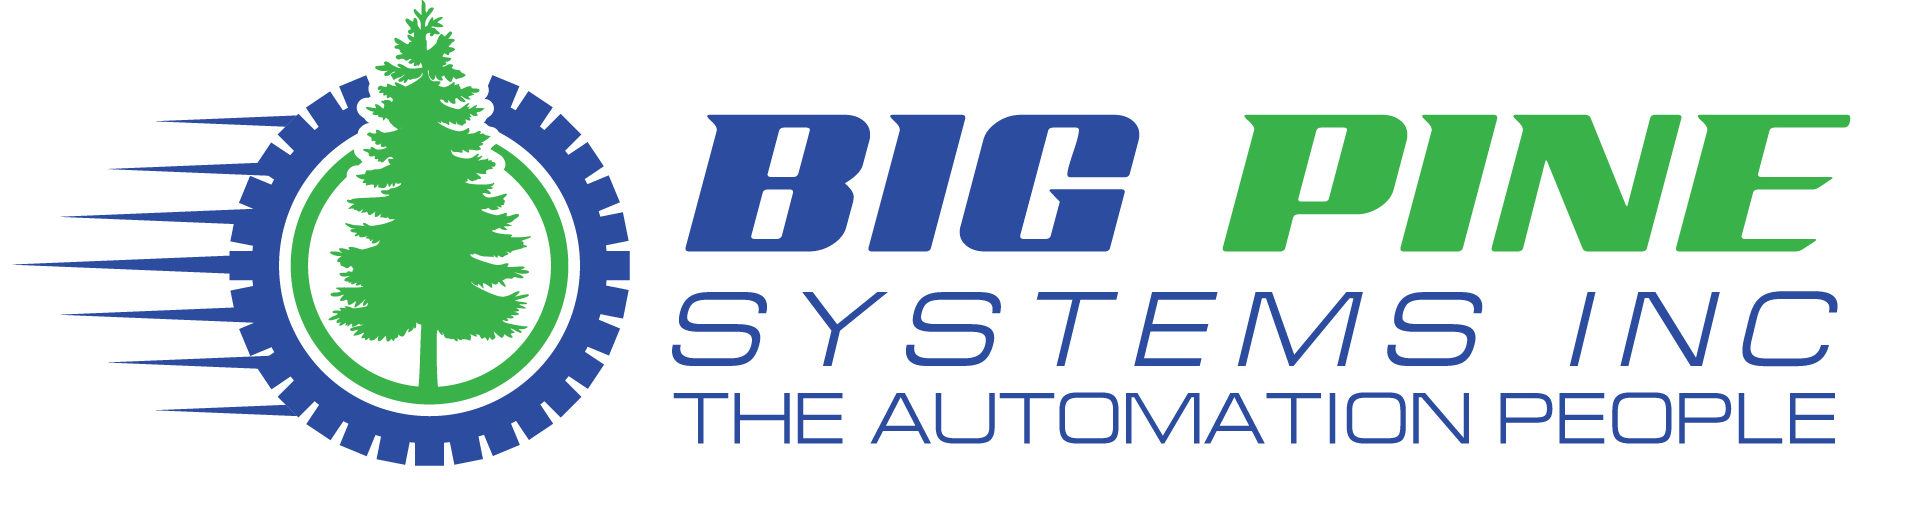 Big Pine Systems, Inc.